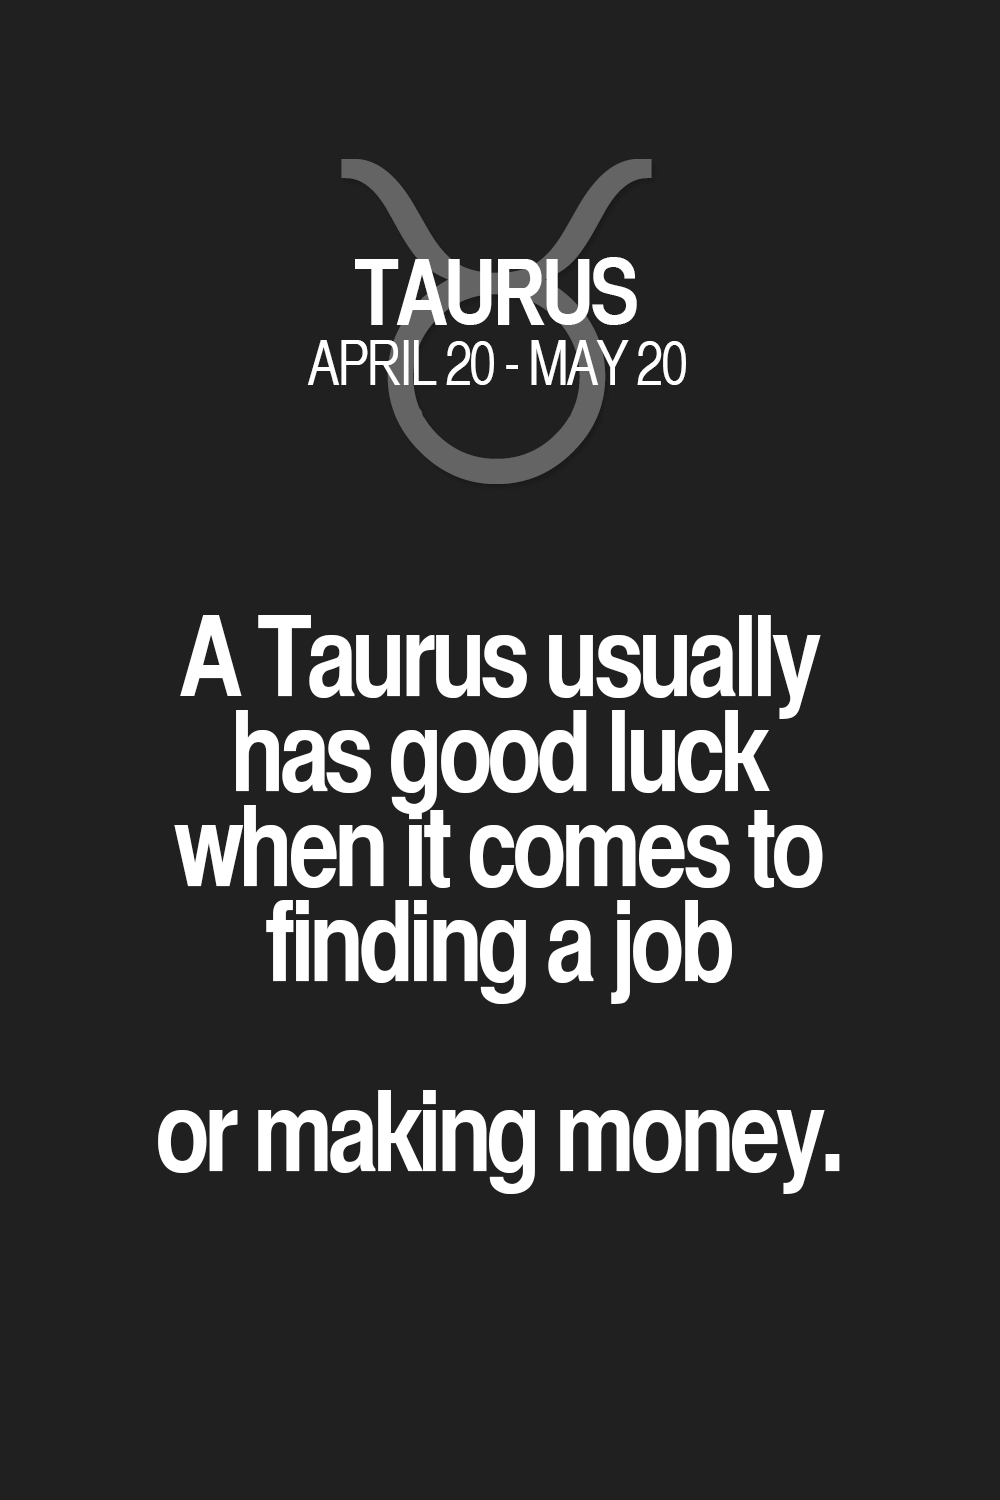 A Taurus usually has good luck when it comes to finding a